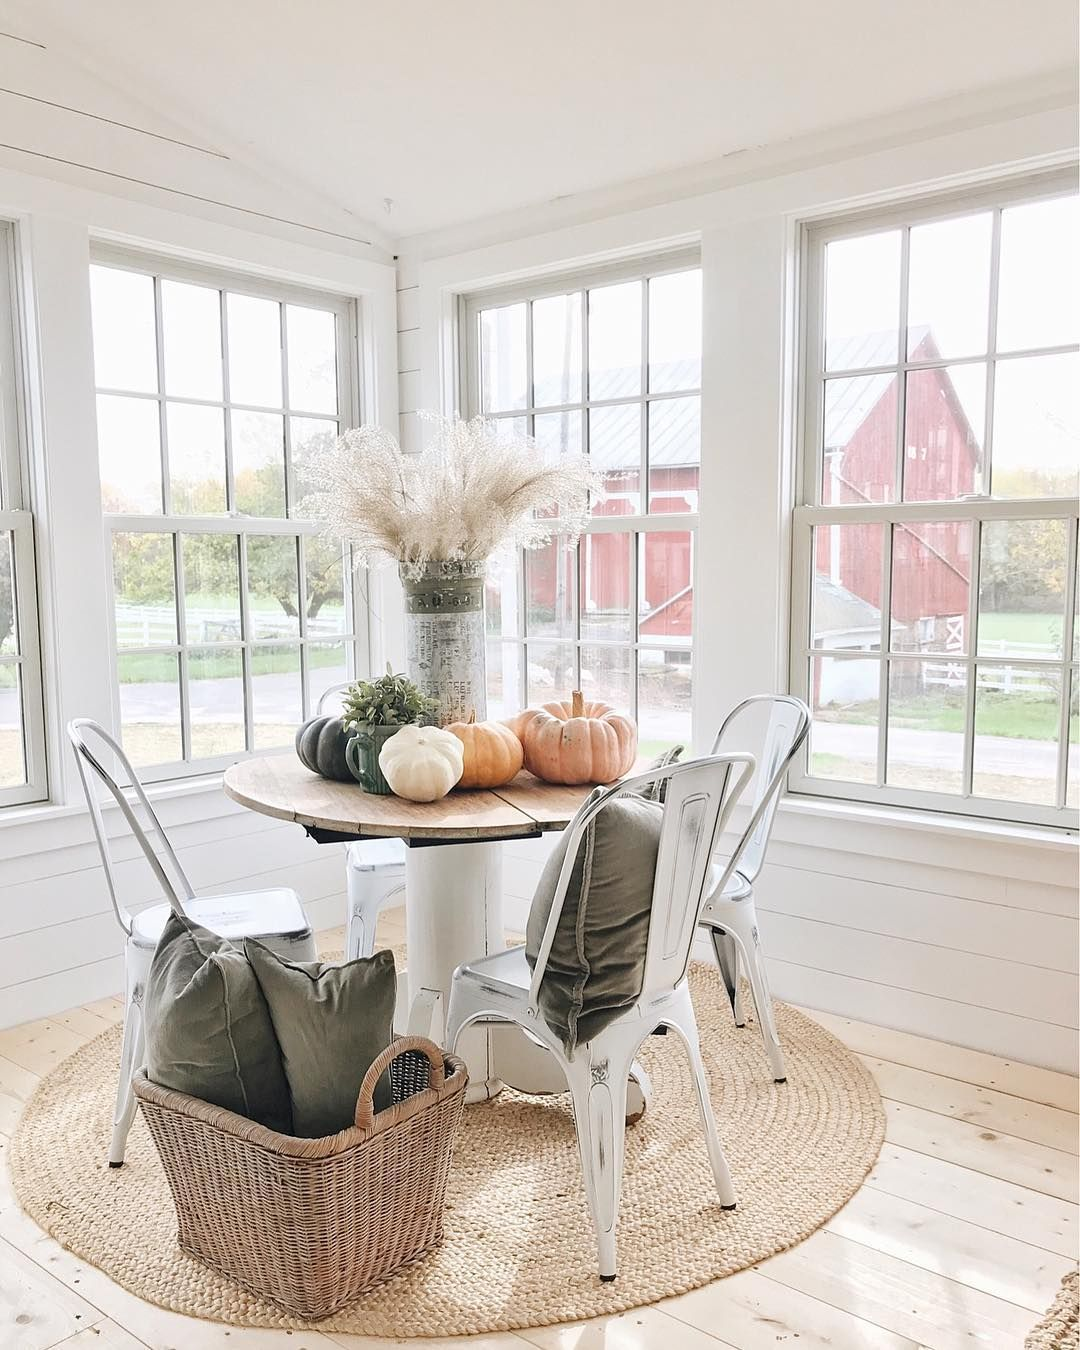 Furniture Near Here: Pin By T Bender On Farm In Autumn